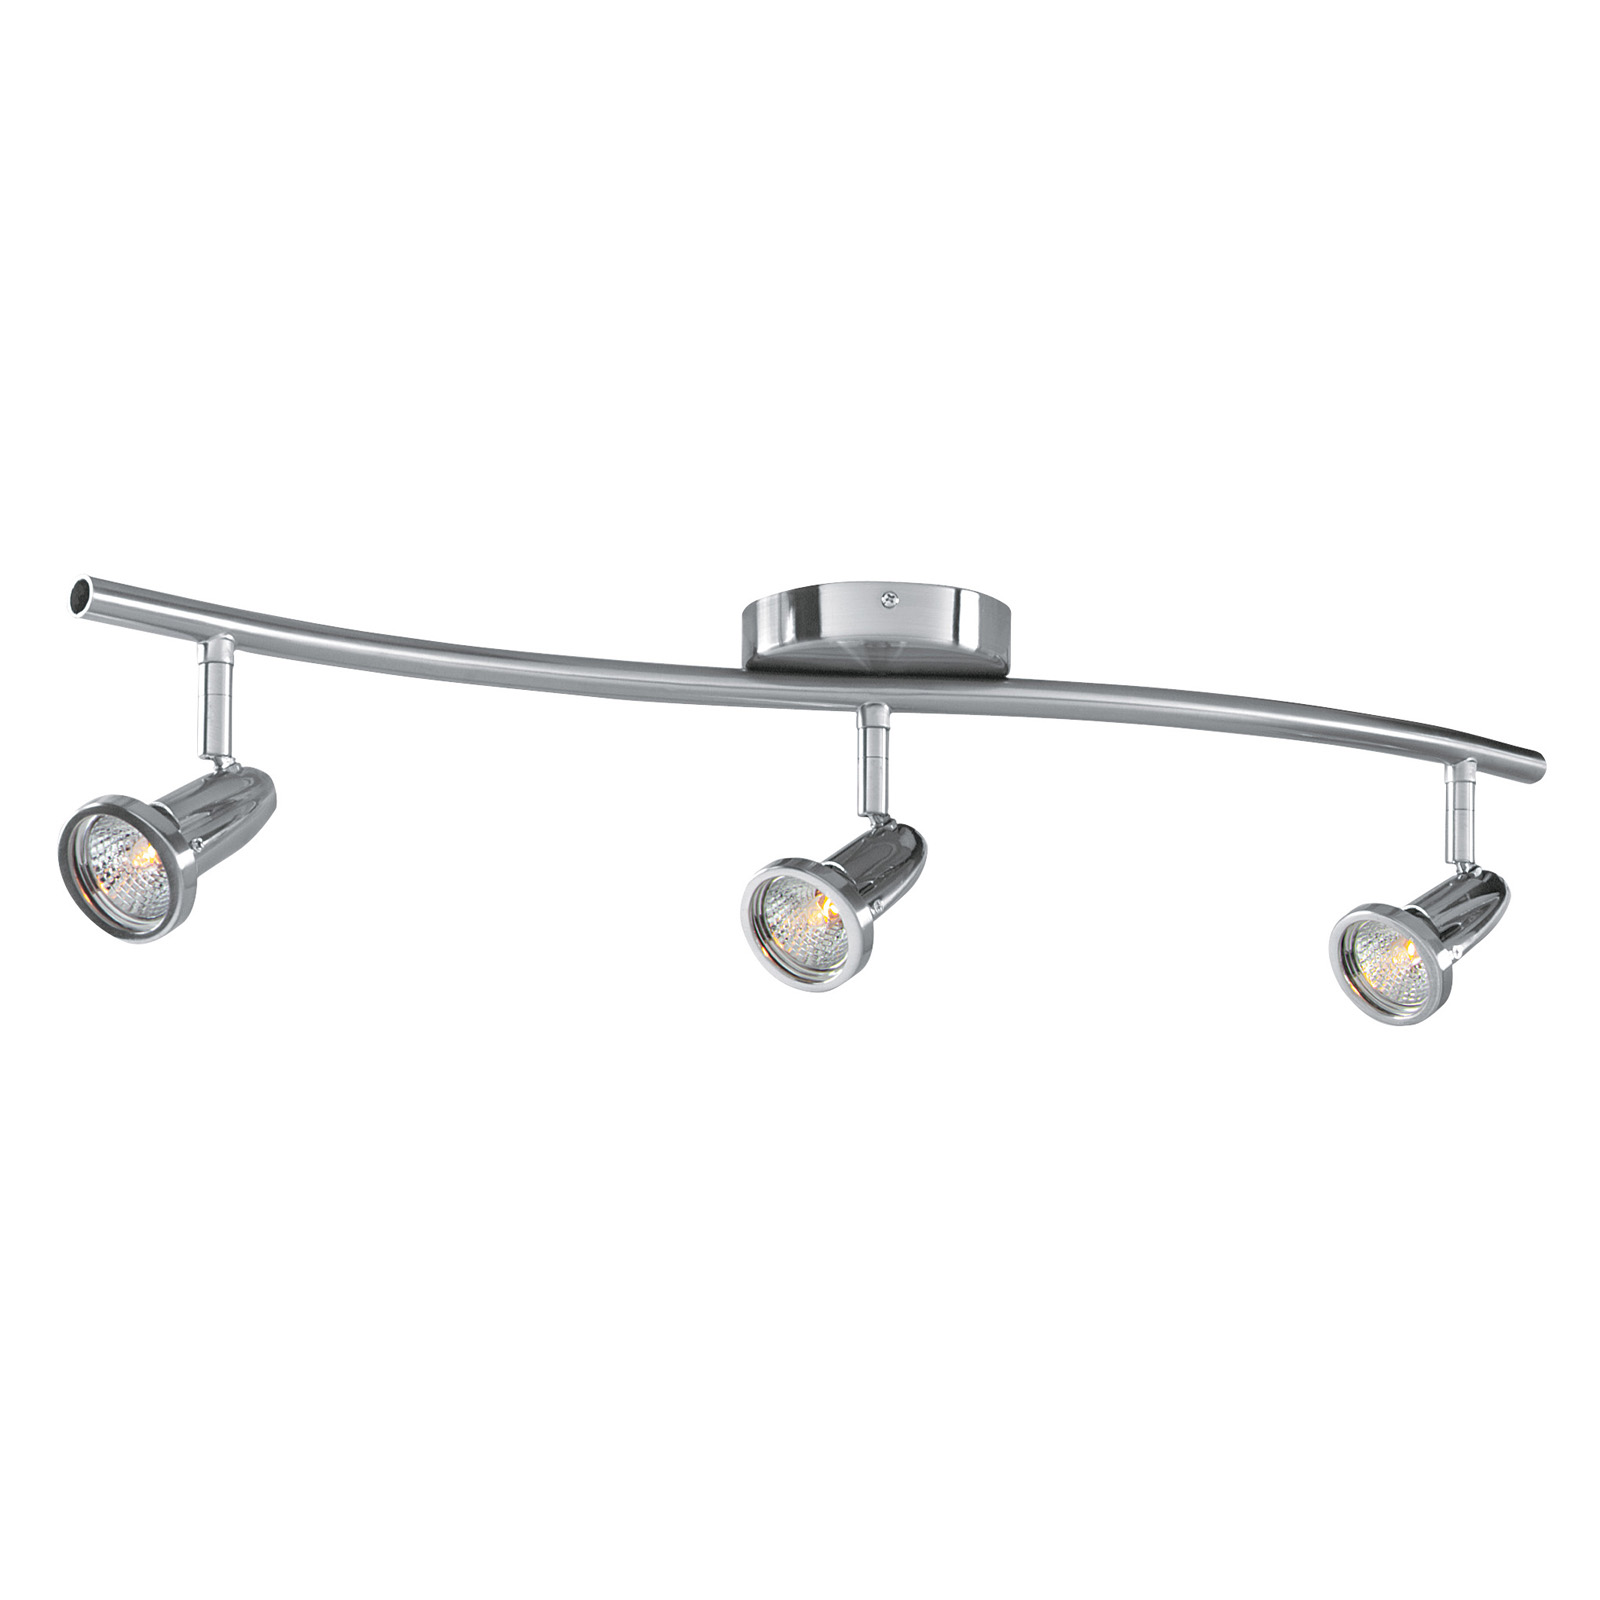 Access Cobra Flush Mount Rail Light Bar